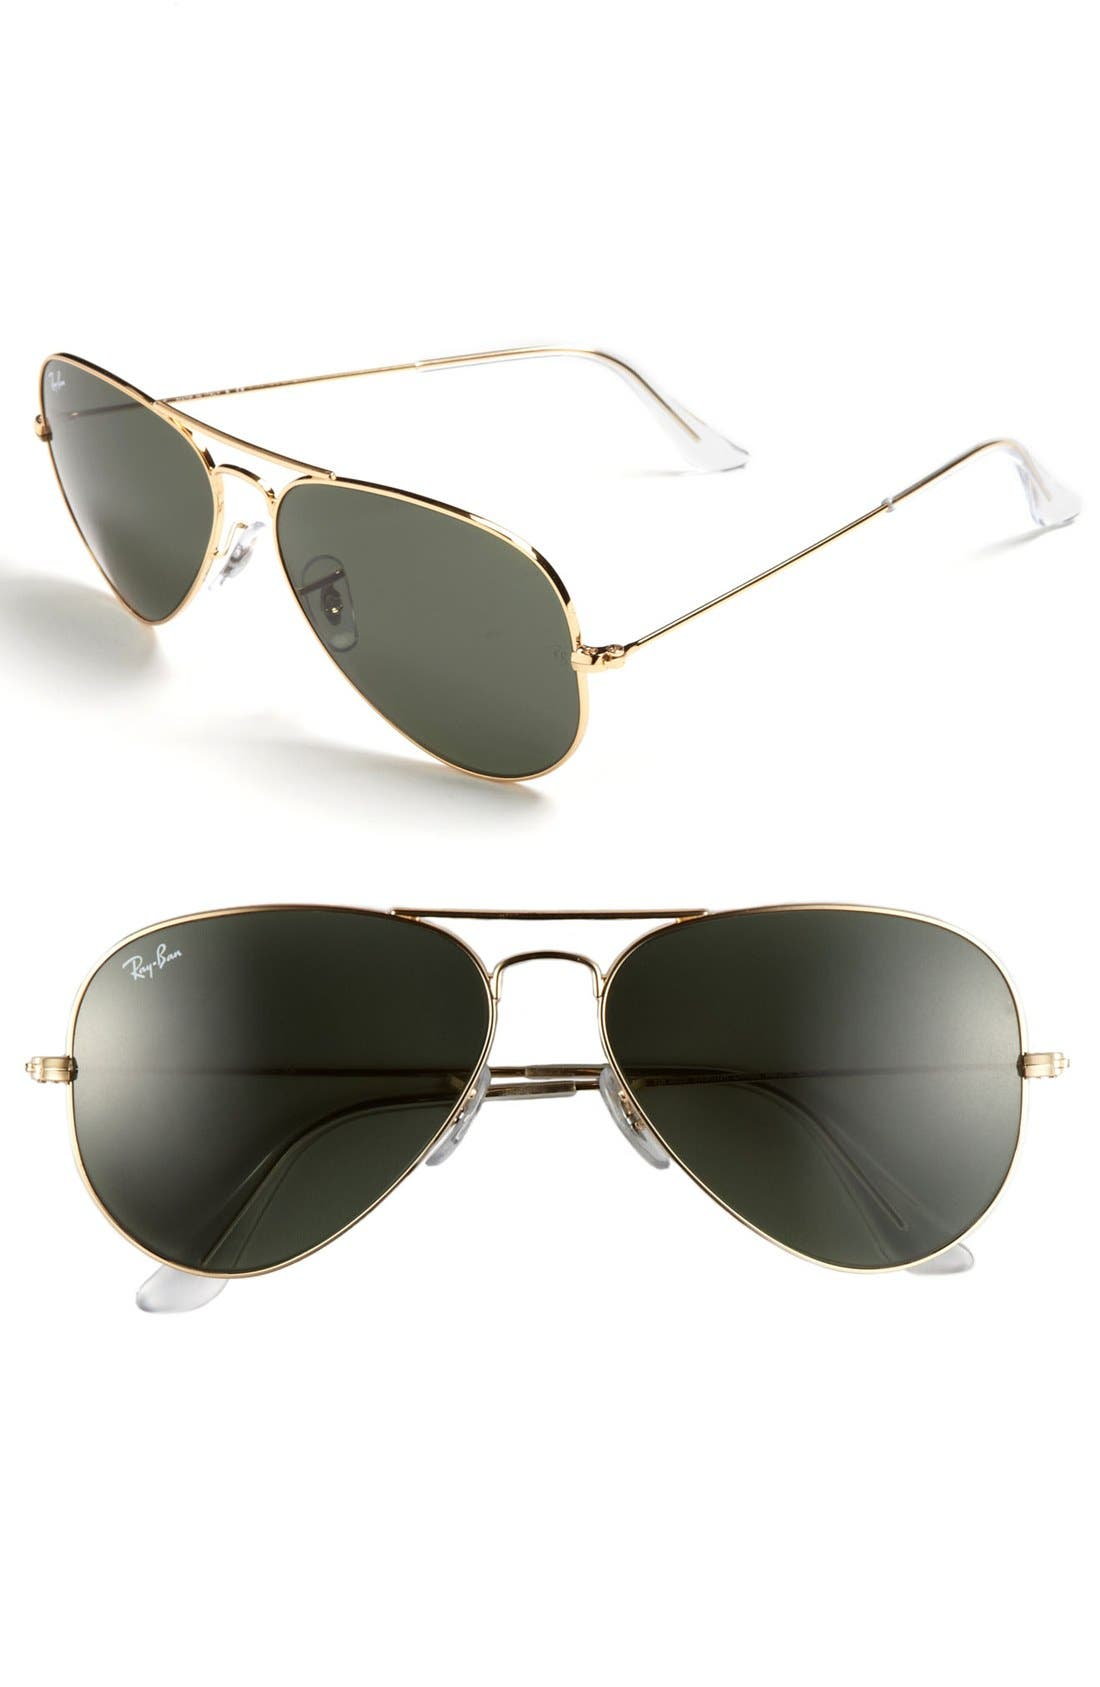 61a733263650 Sunglasses for Women